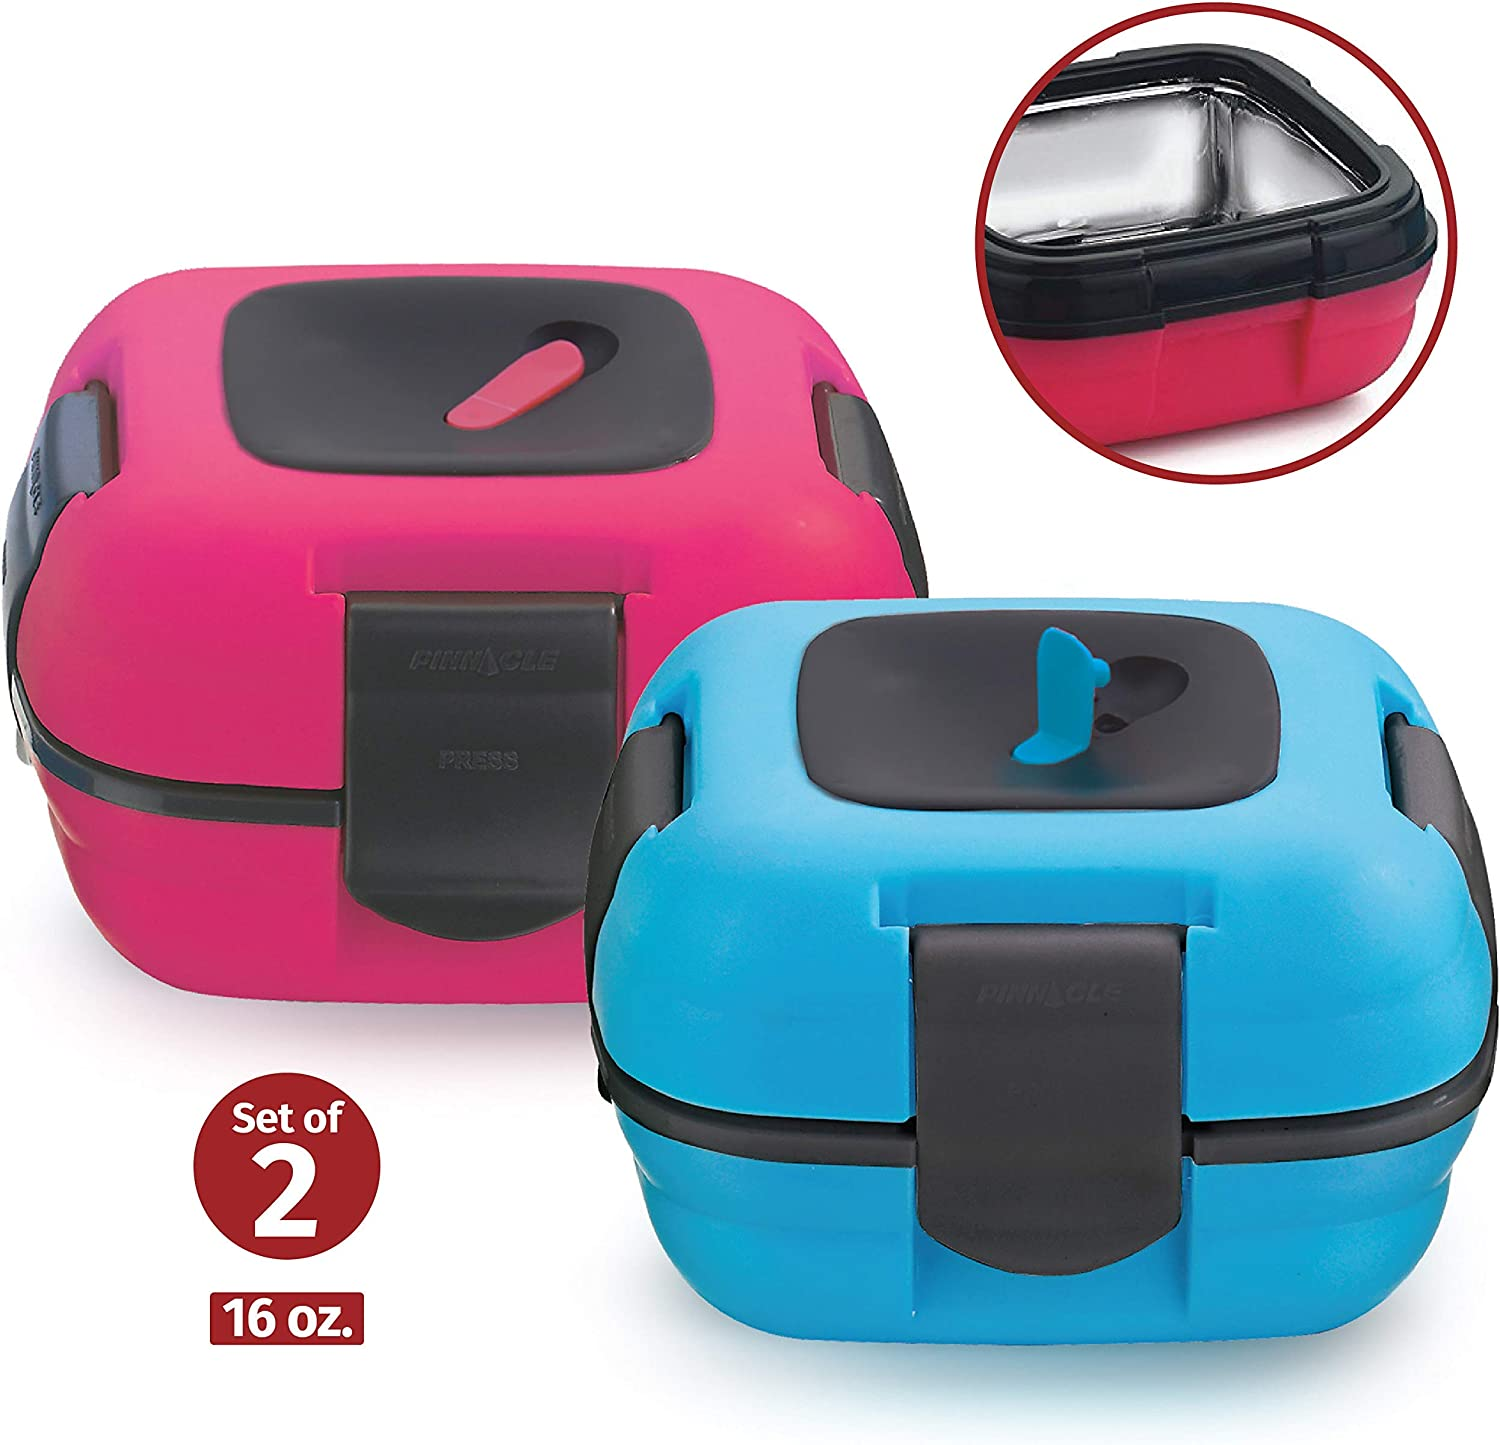 Lunch Box ~ Pinnacle Insulated Leak Proof Lunch Box for Adults and Kids - Thermal Lunch Container with New Heat Release Valve 16 oz ~Set of 2~ Blue-Pink